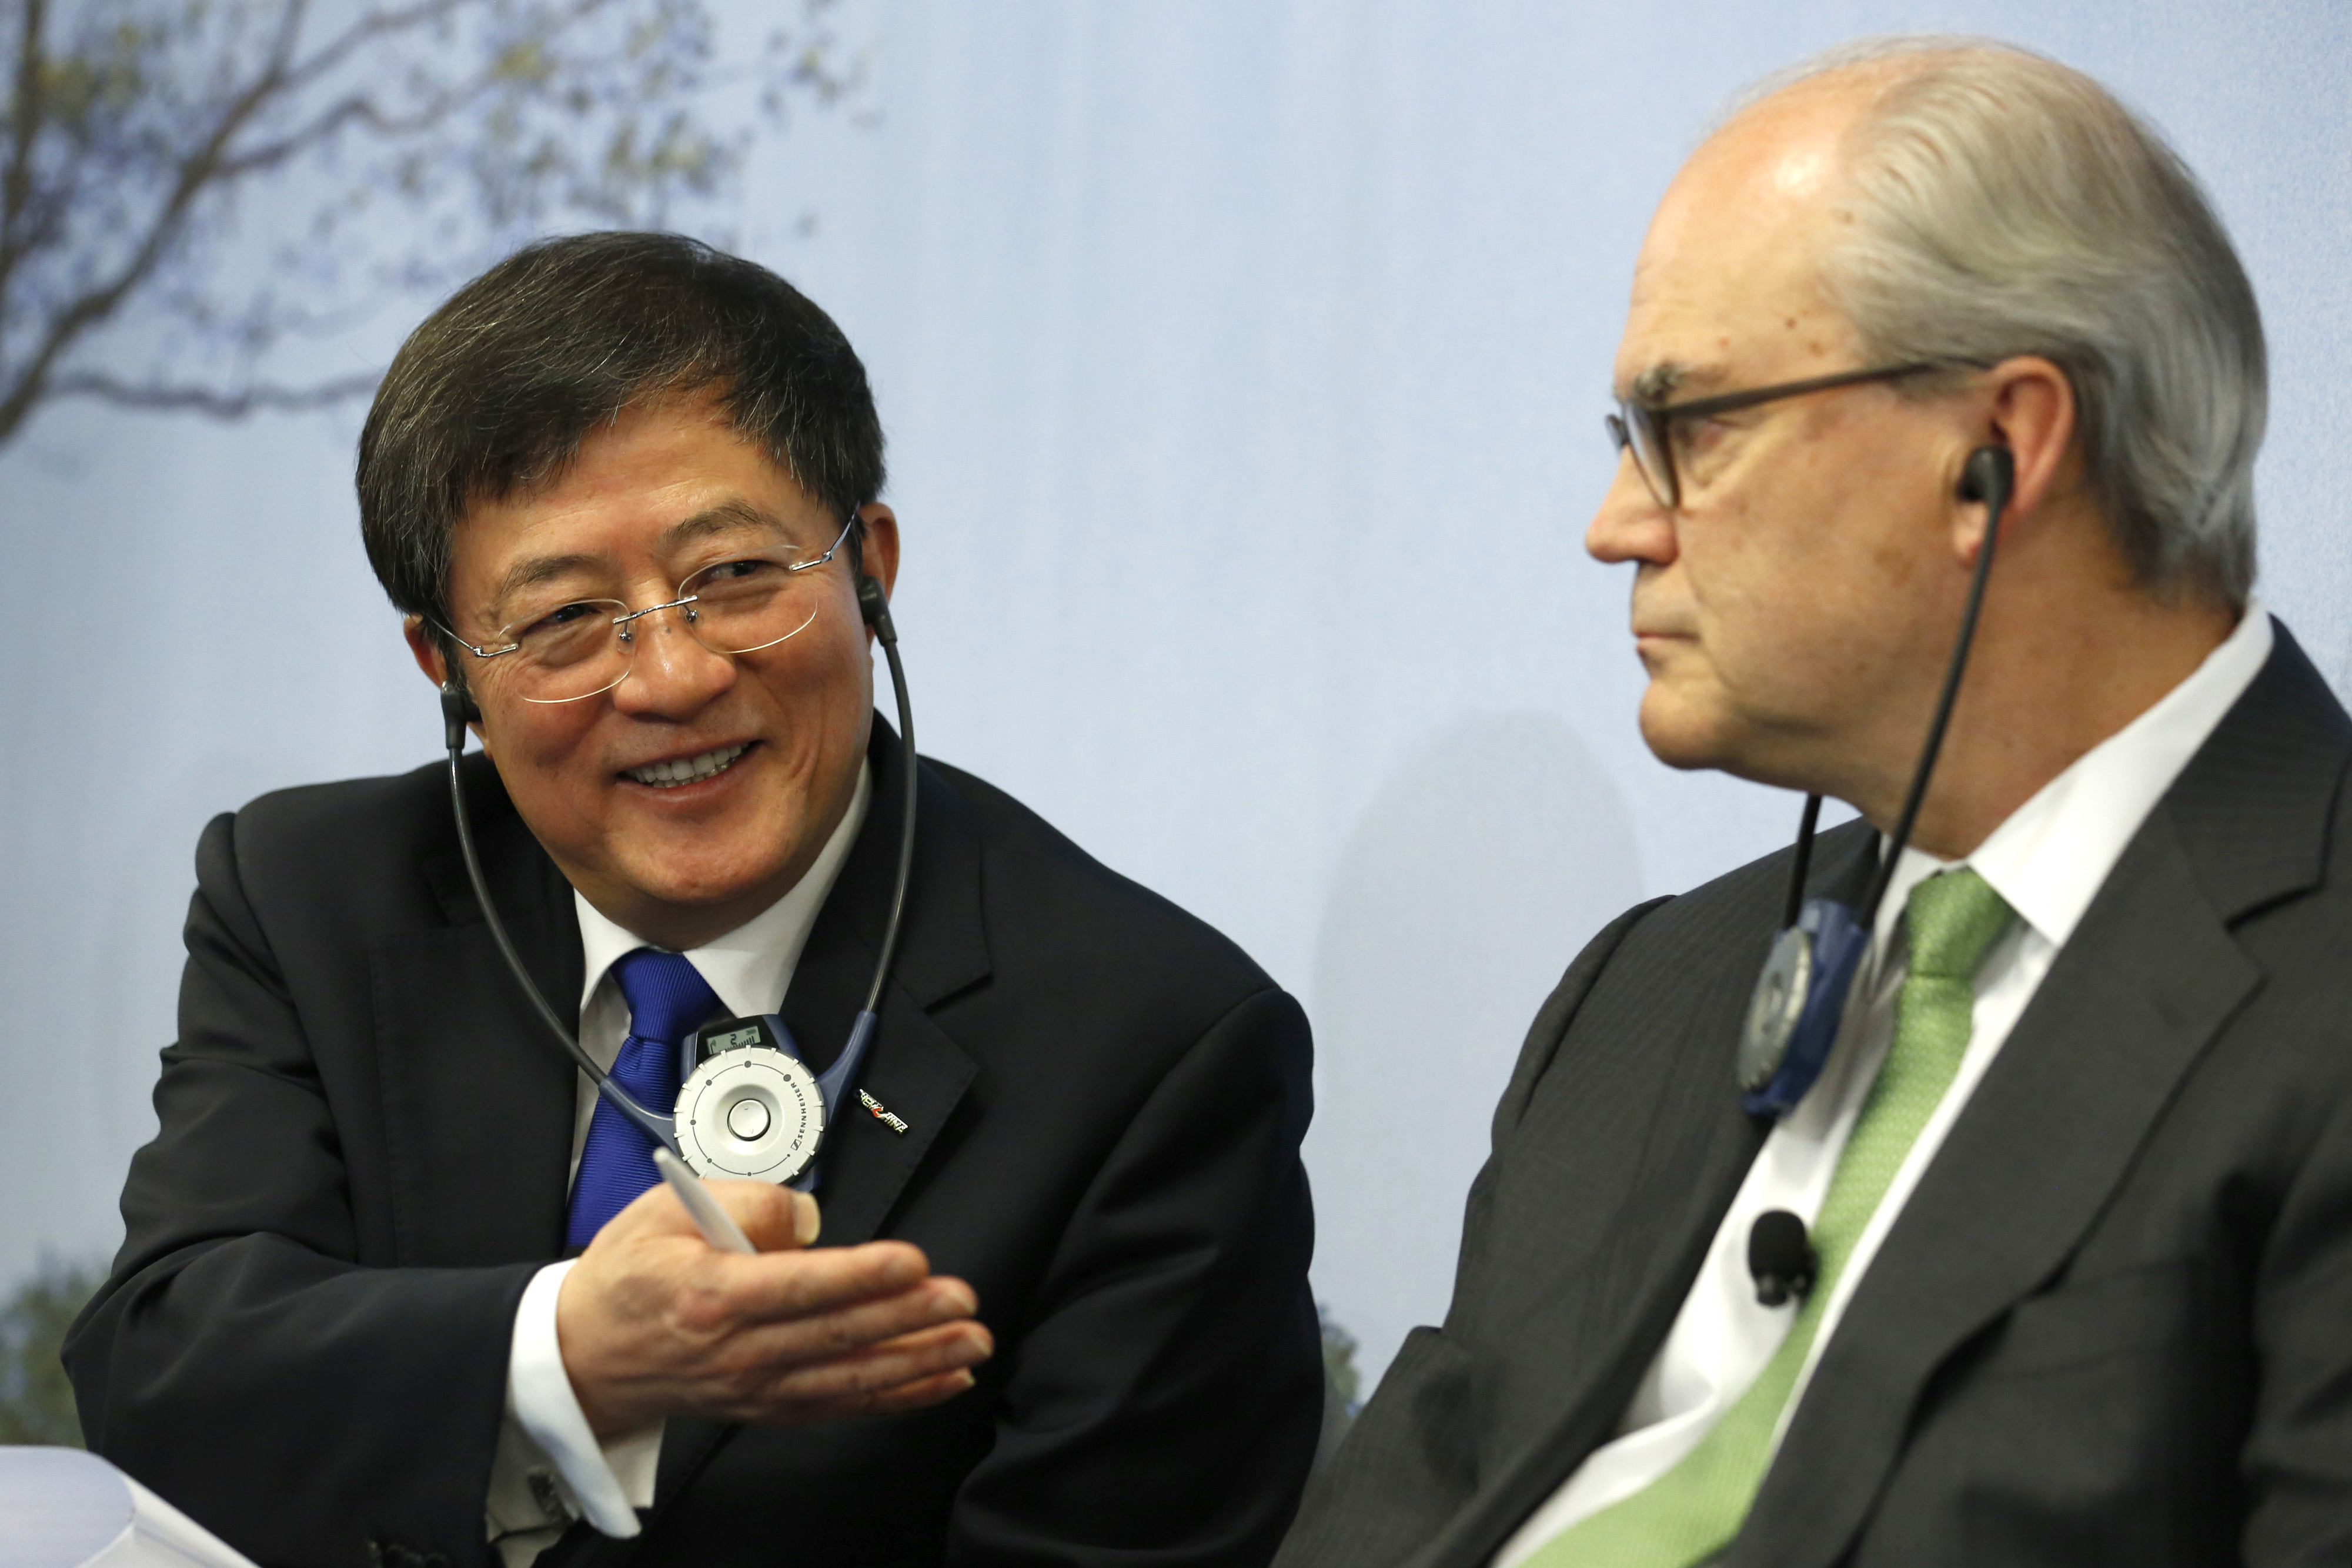 Syngenta AG Full Year Results News Conference As ChemChina Agrees To Record $43 Billion Deal